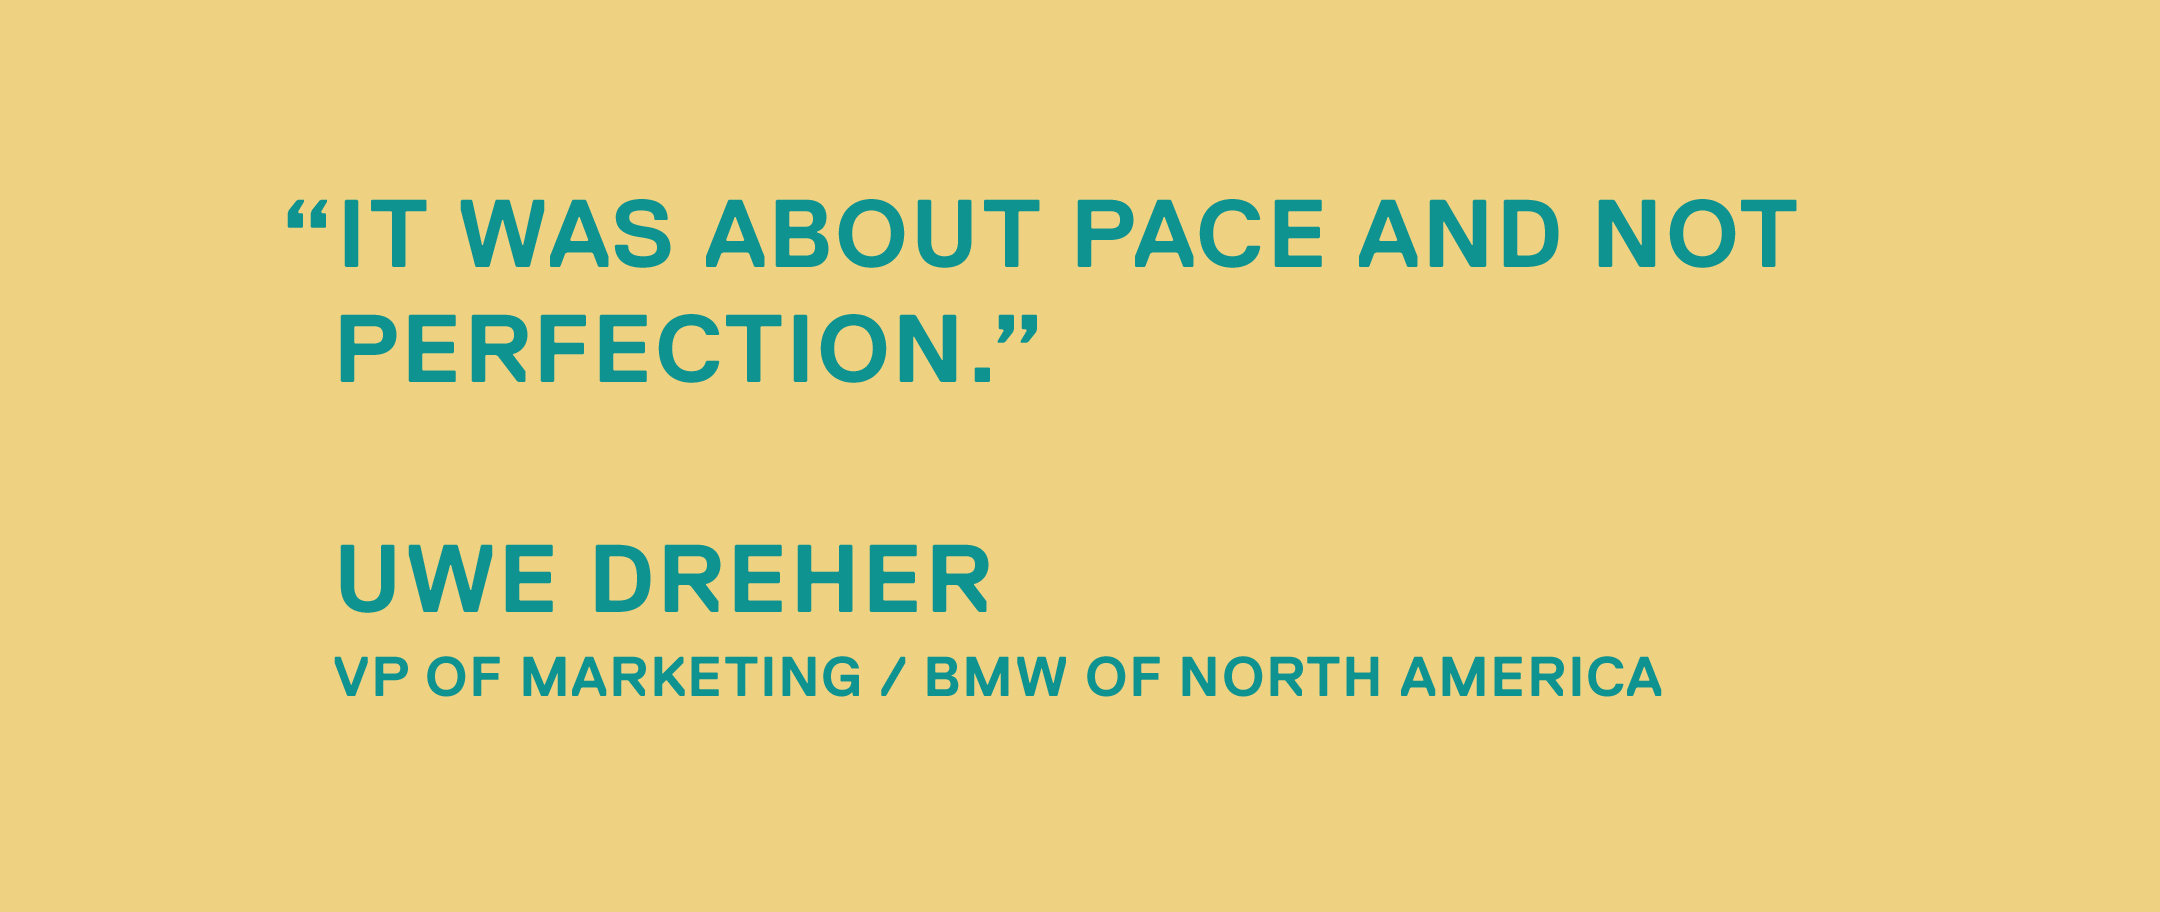 It was about pace and not perfection.— Uwe Dreher, VP of Marketing / BMW of North America